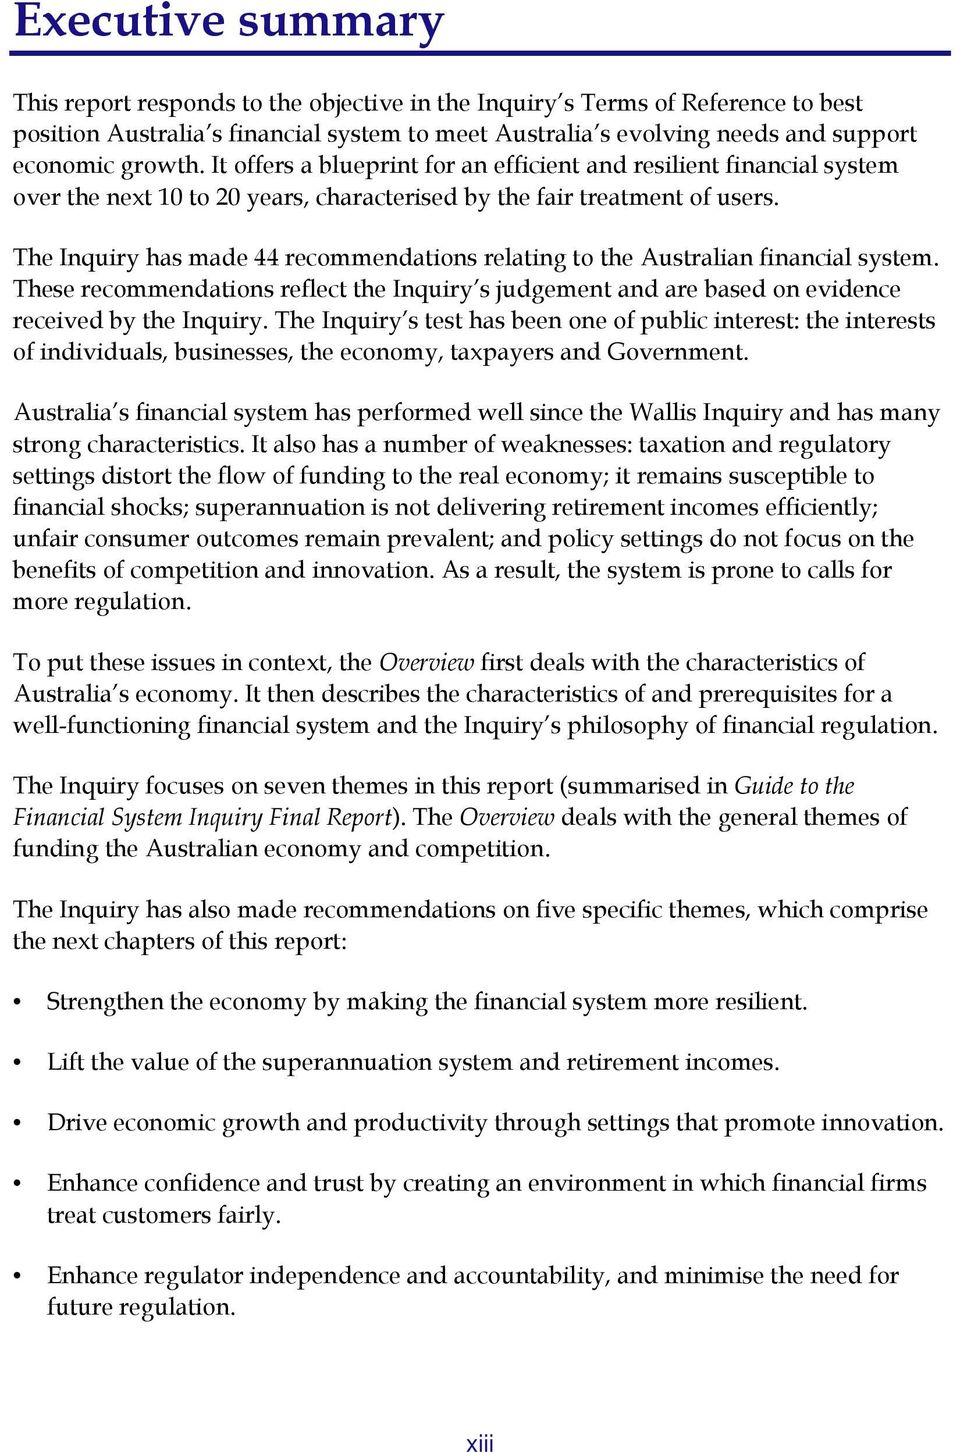 The Inquiry has made 44 recommendations relating to the Australian financial system. These recommendations reflect the Inquiry s judgement and are based on evidence received by the Inquiry.